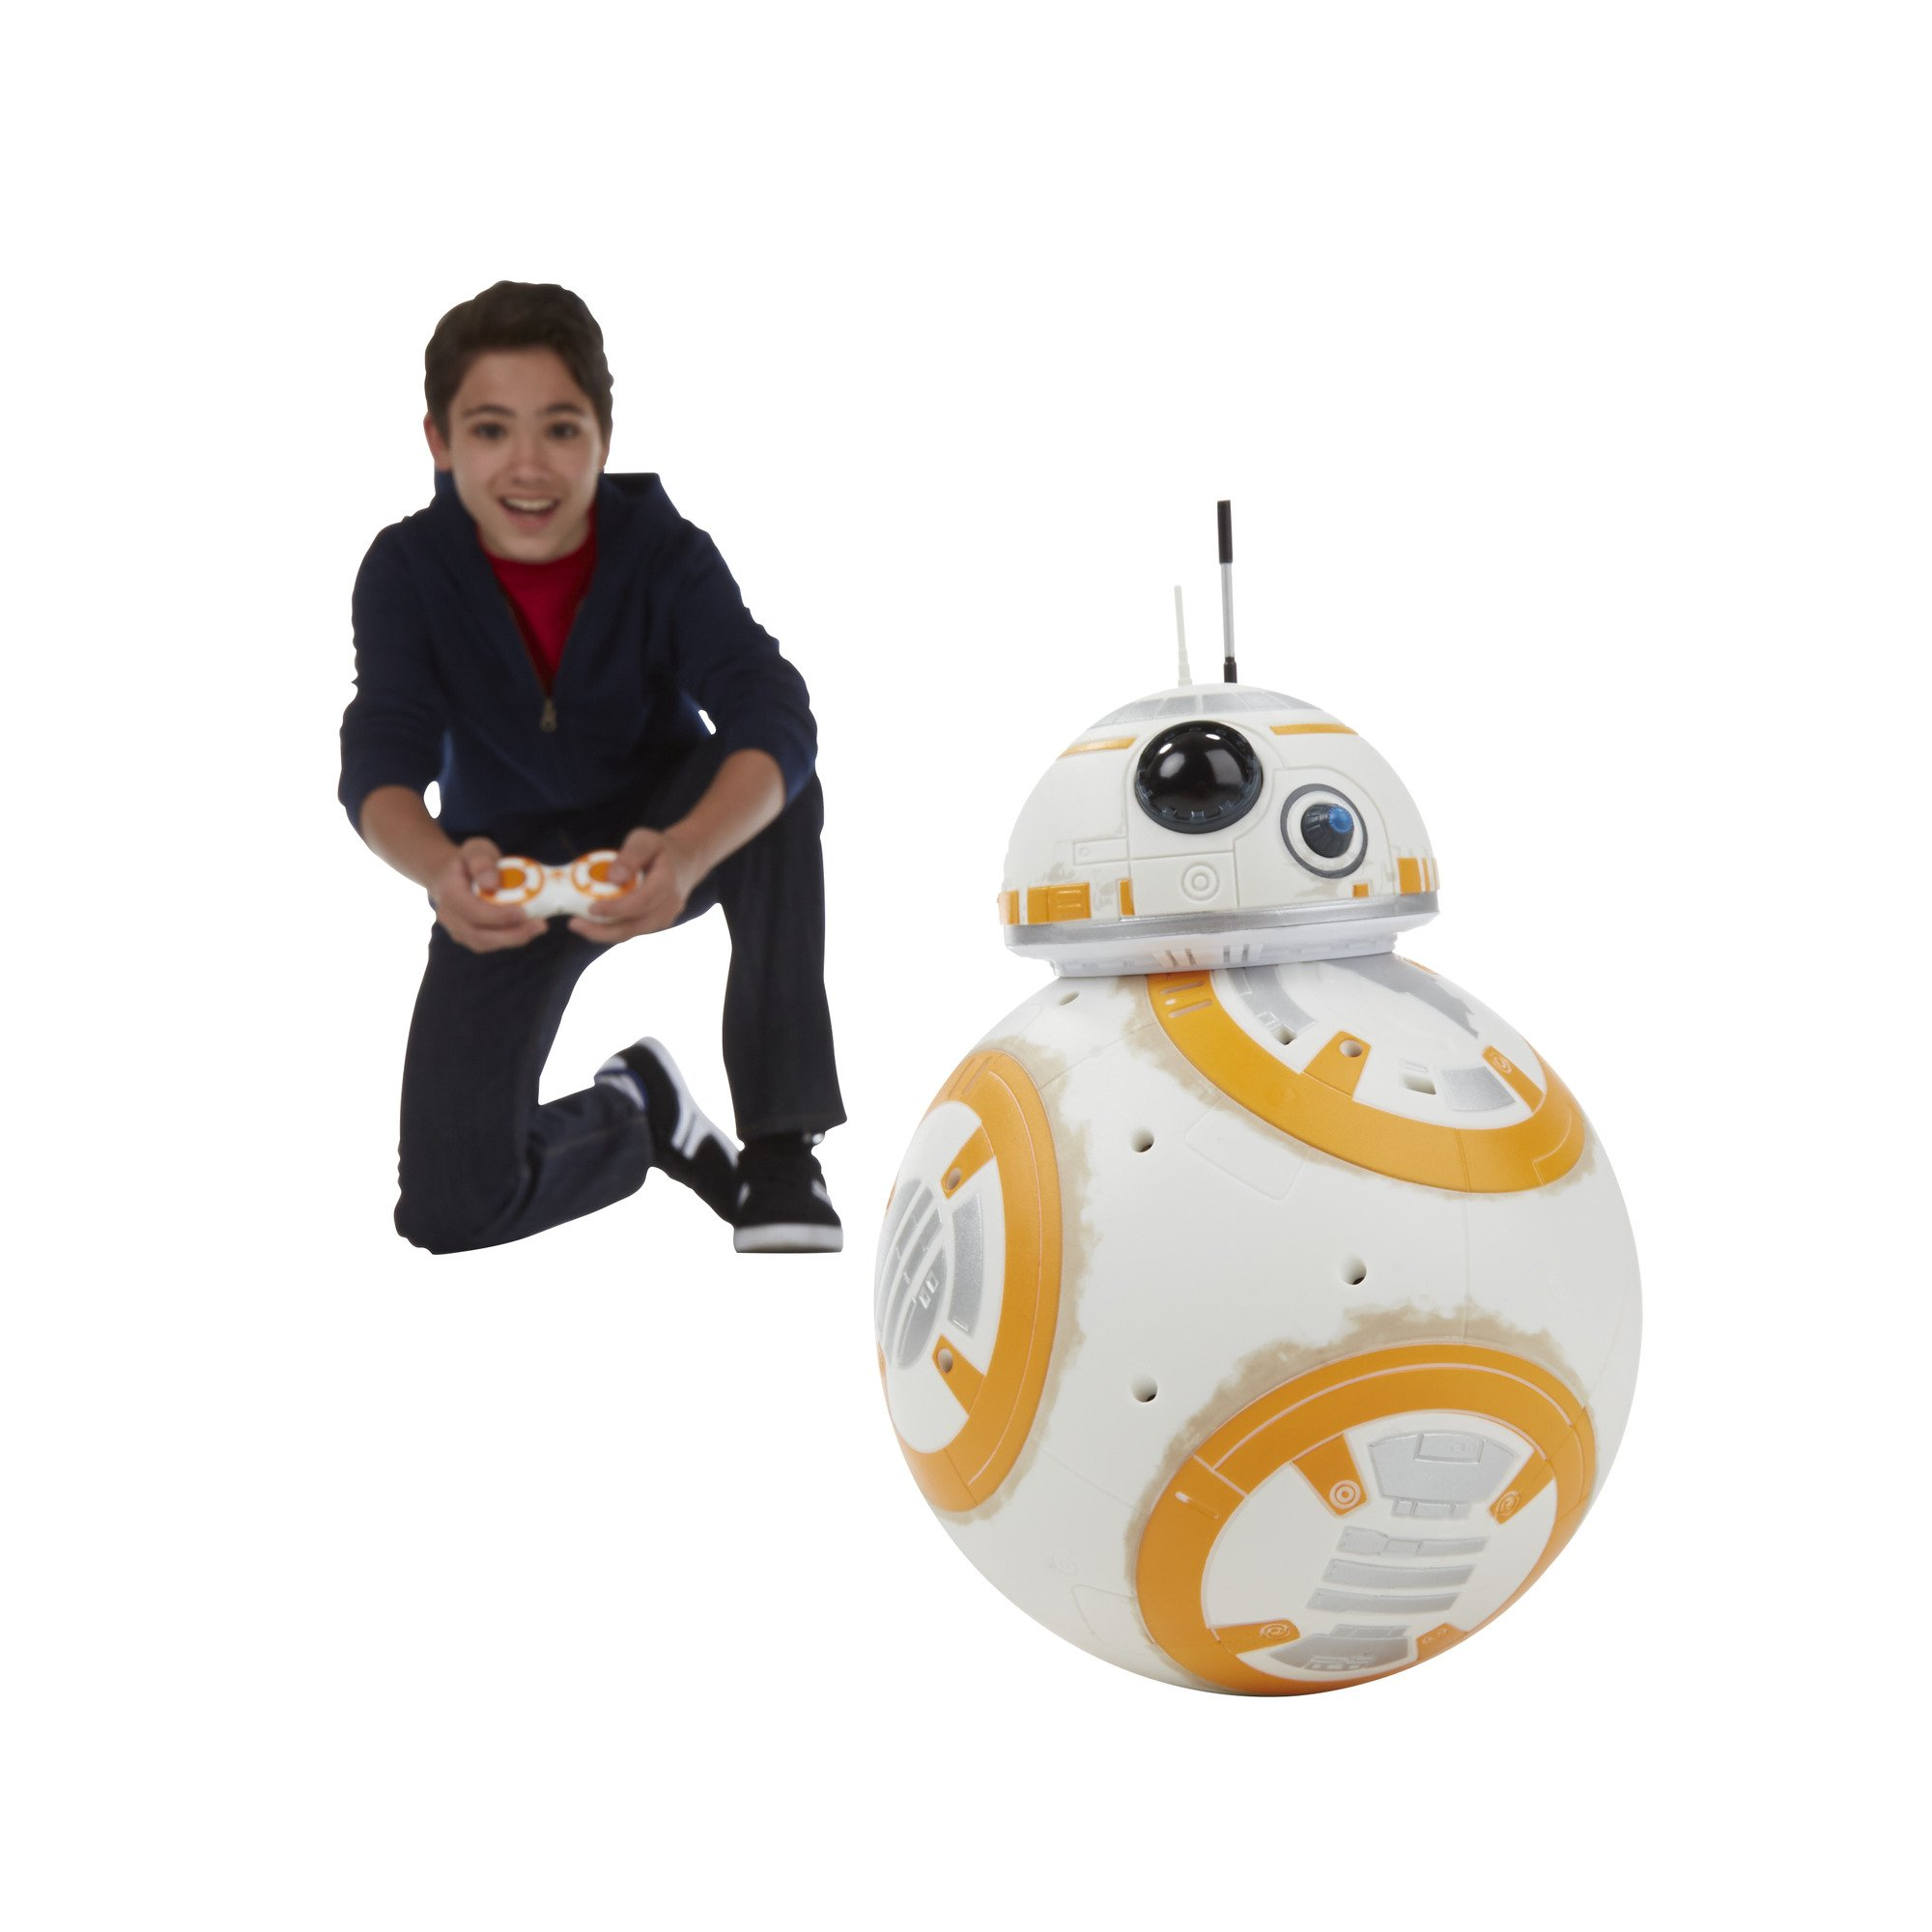 Star Wars The Force Awakens RC BB-8 by Star Wars (Image #8)